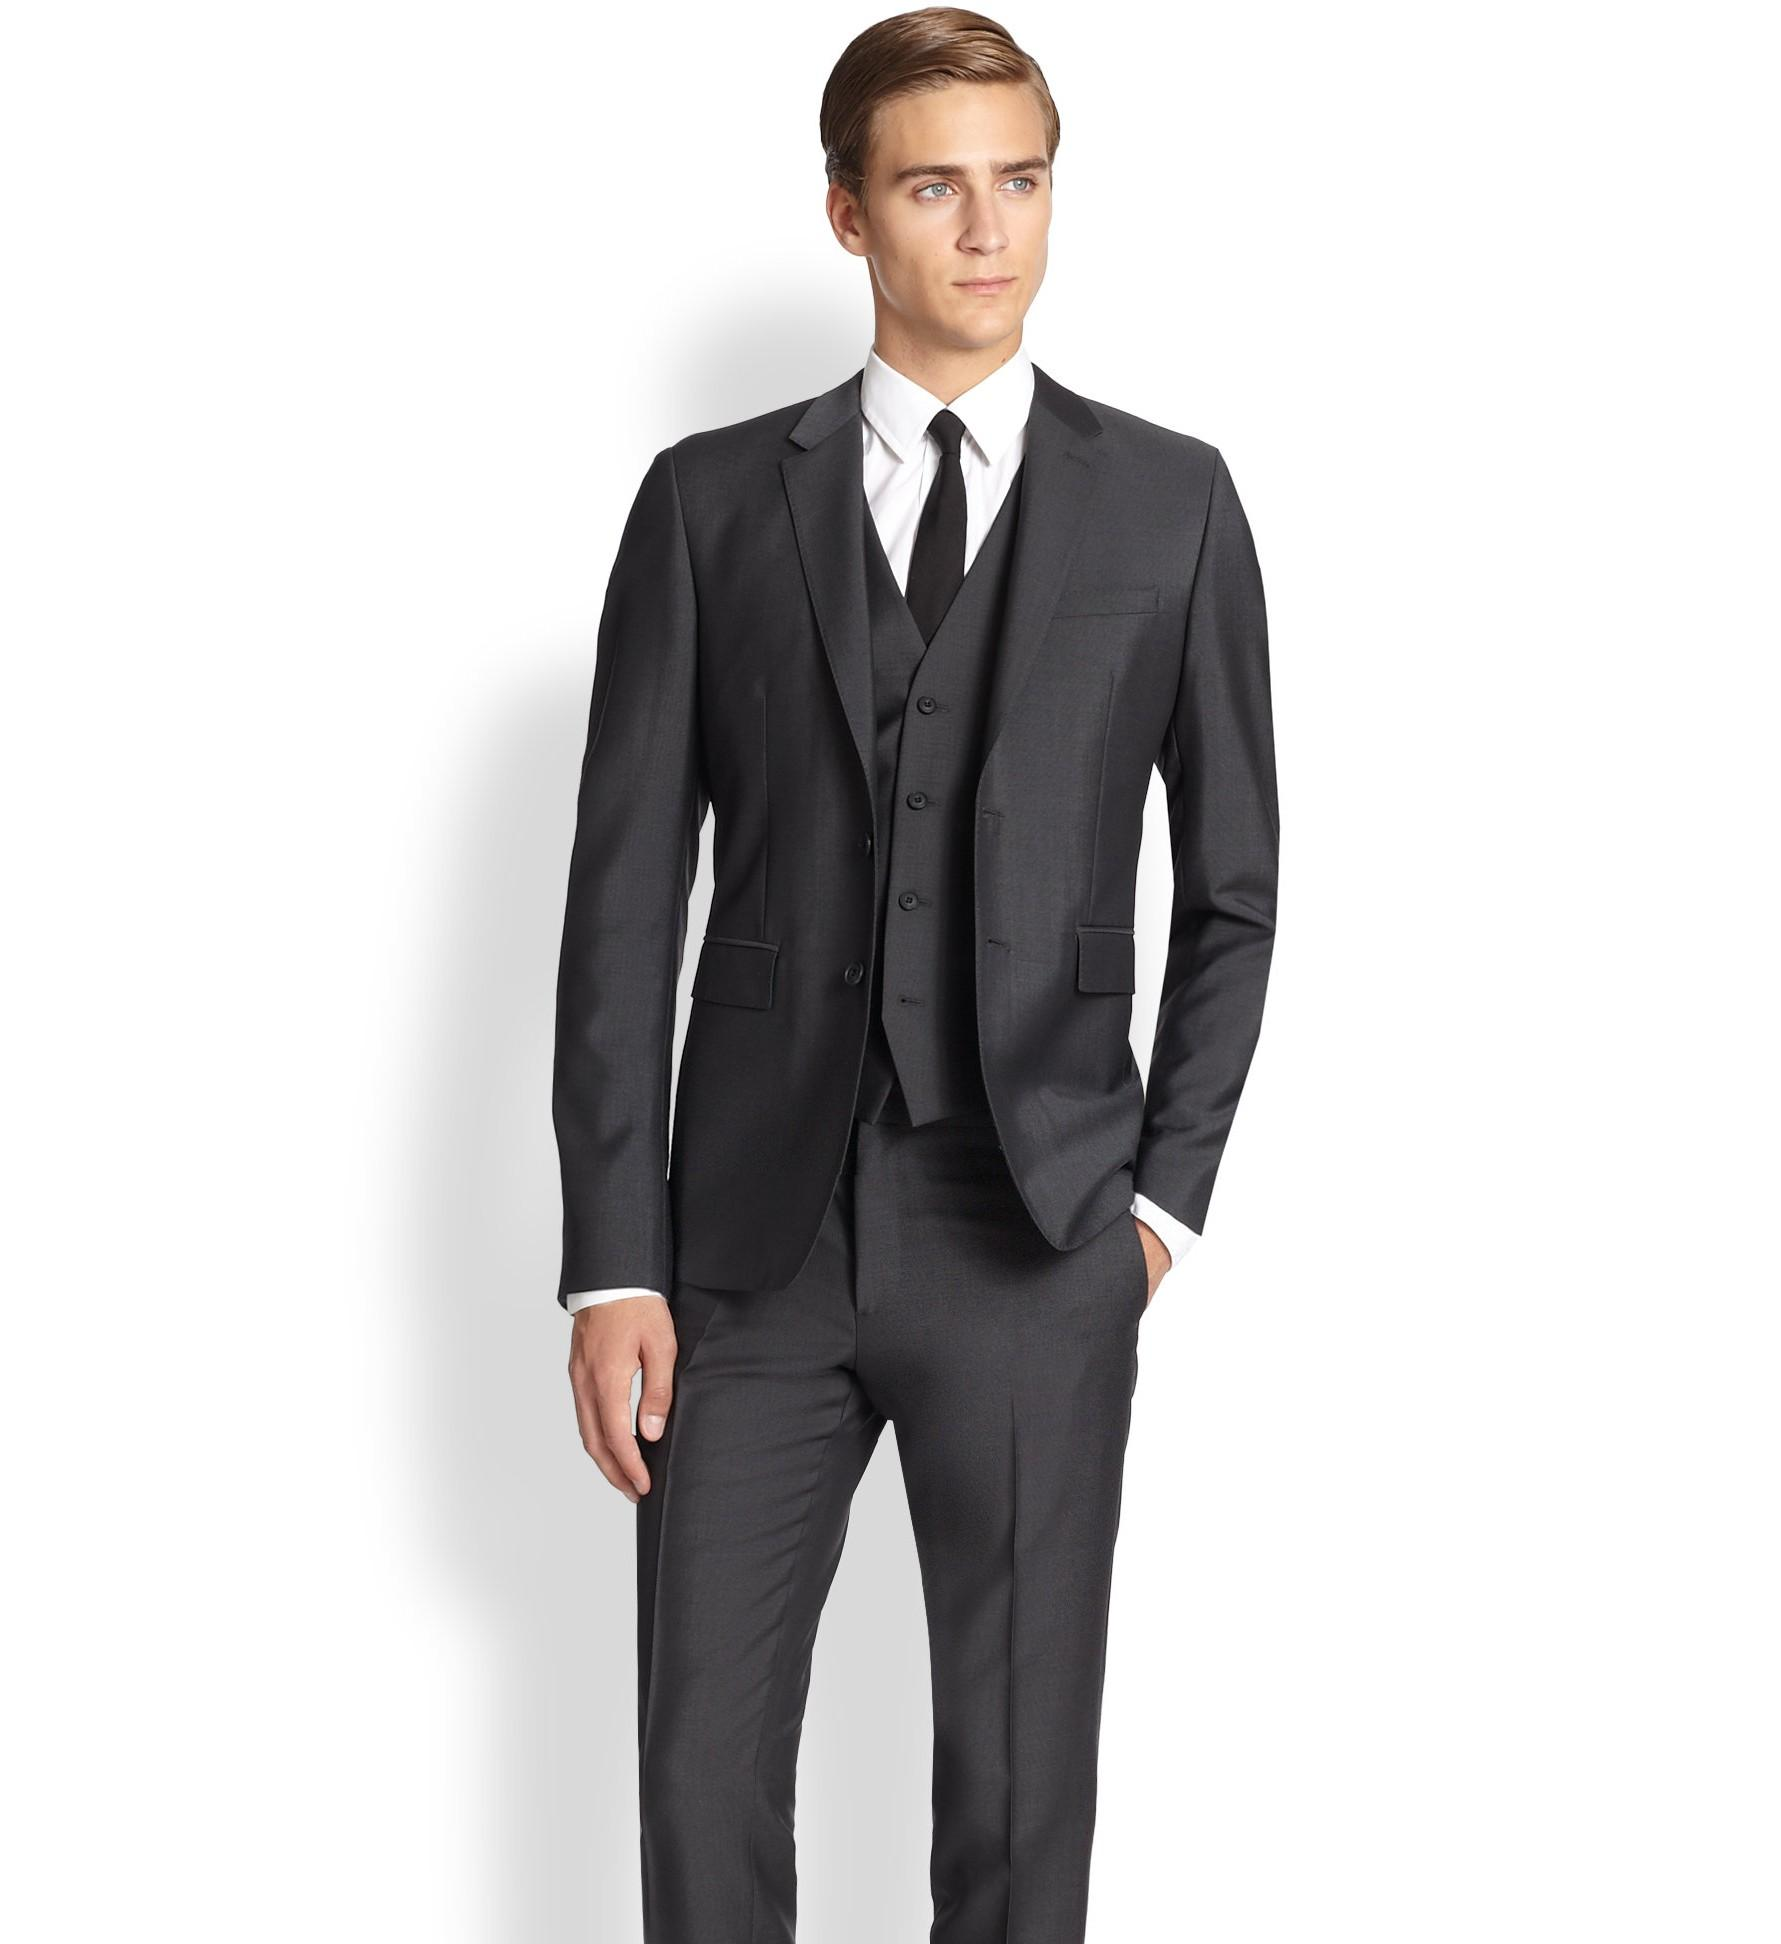 Mens Wedding Suits Slim Fit Dress Yy